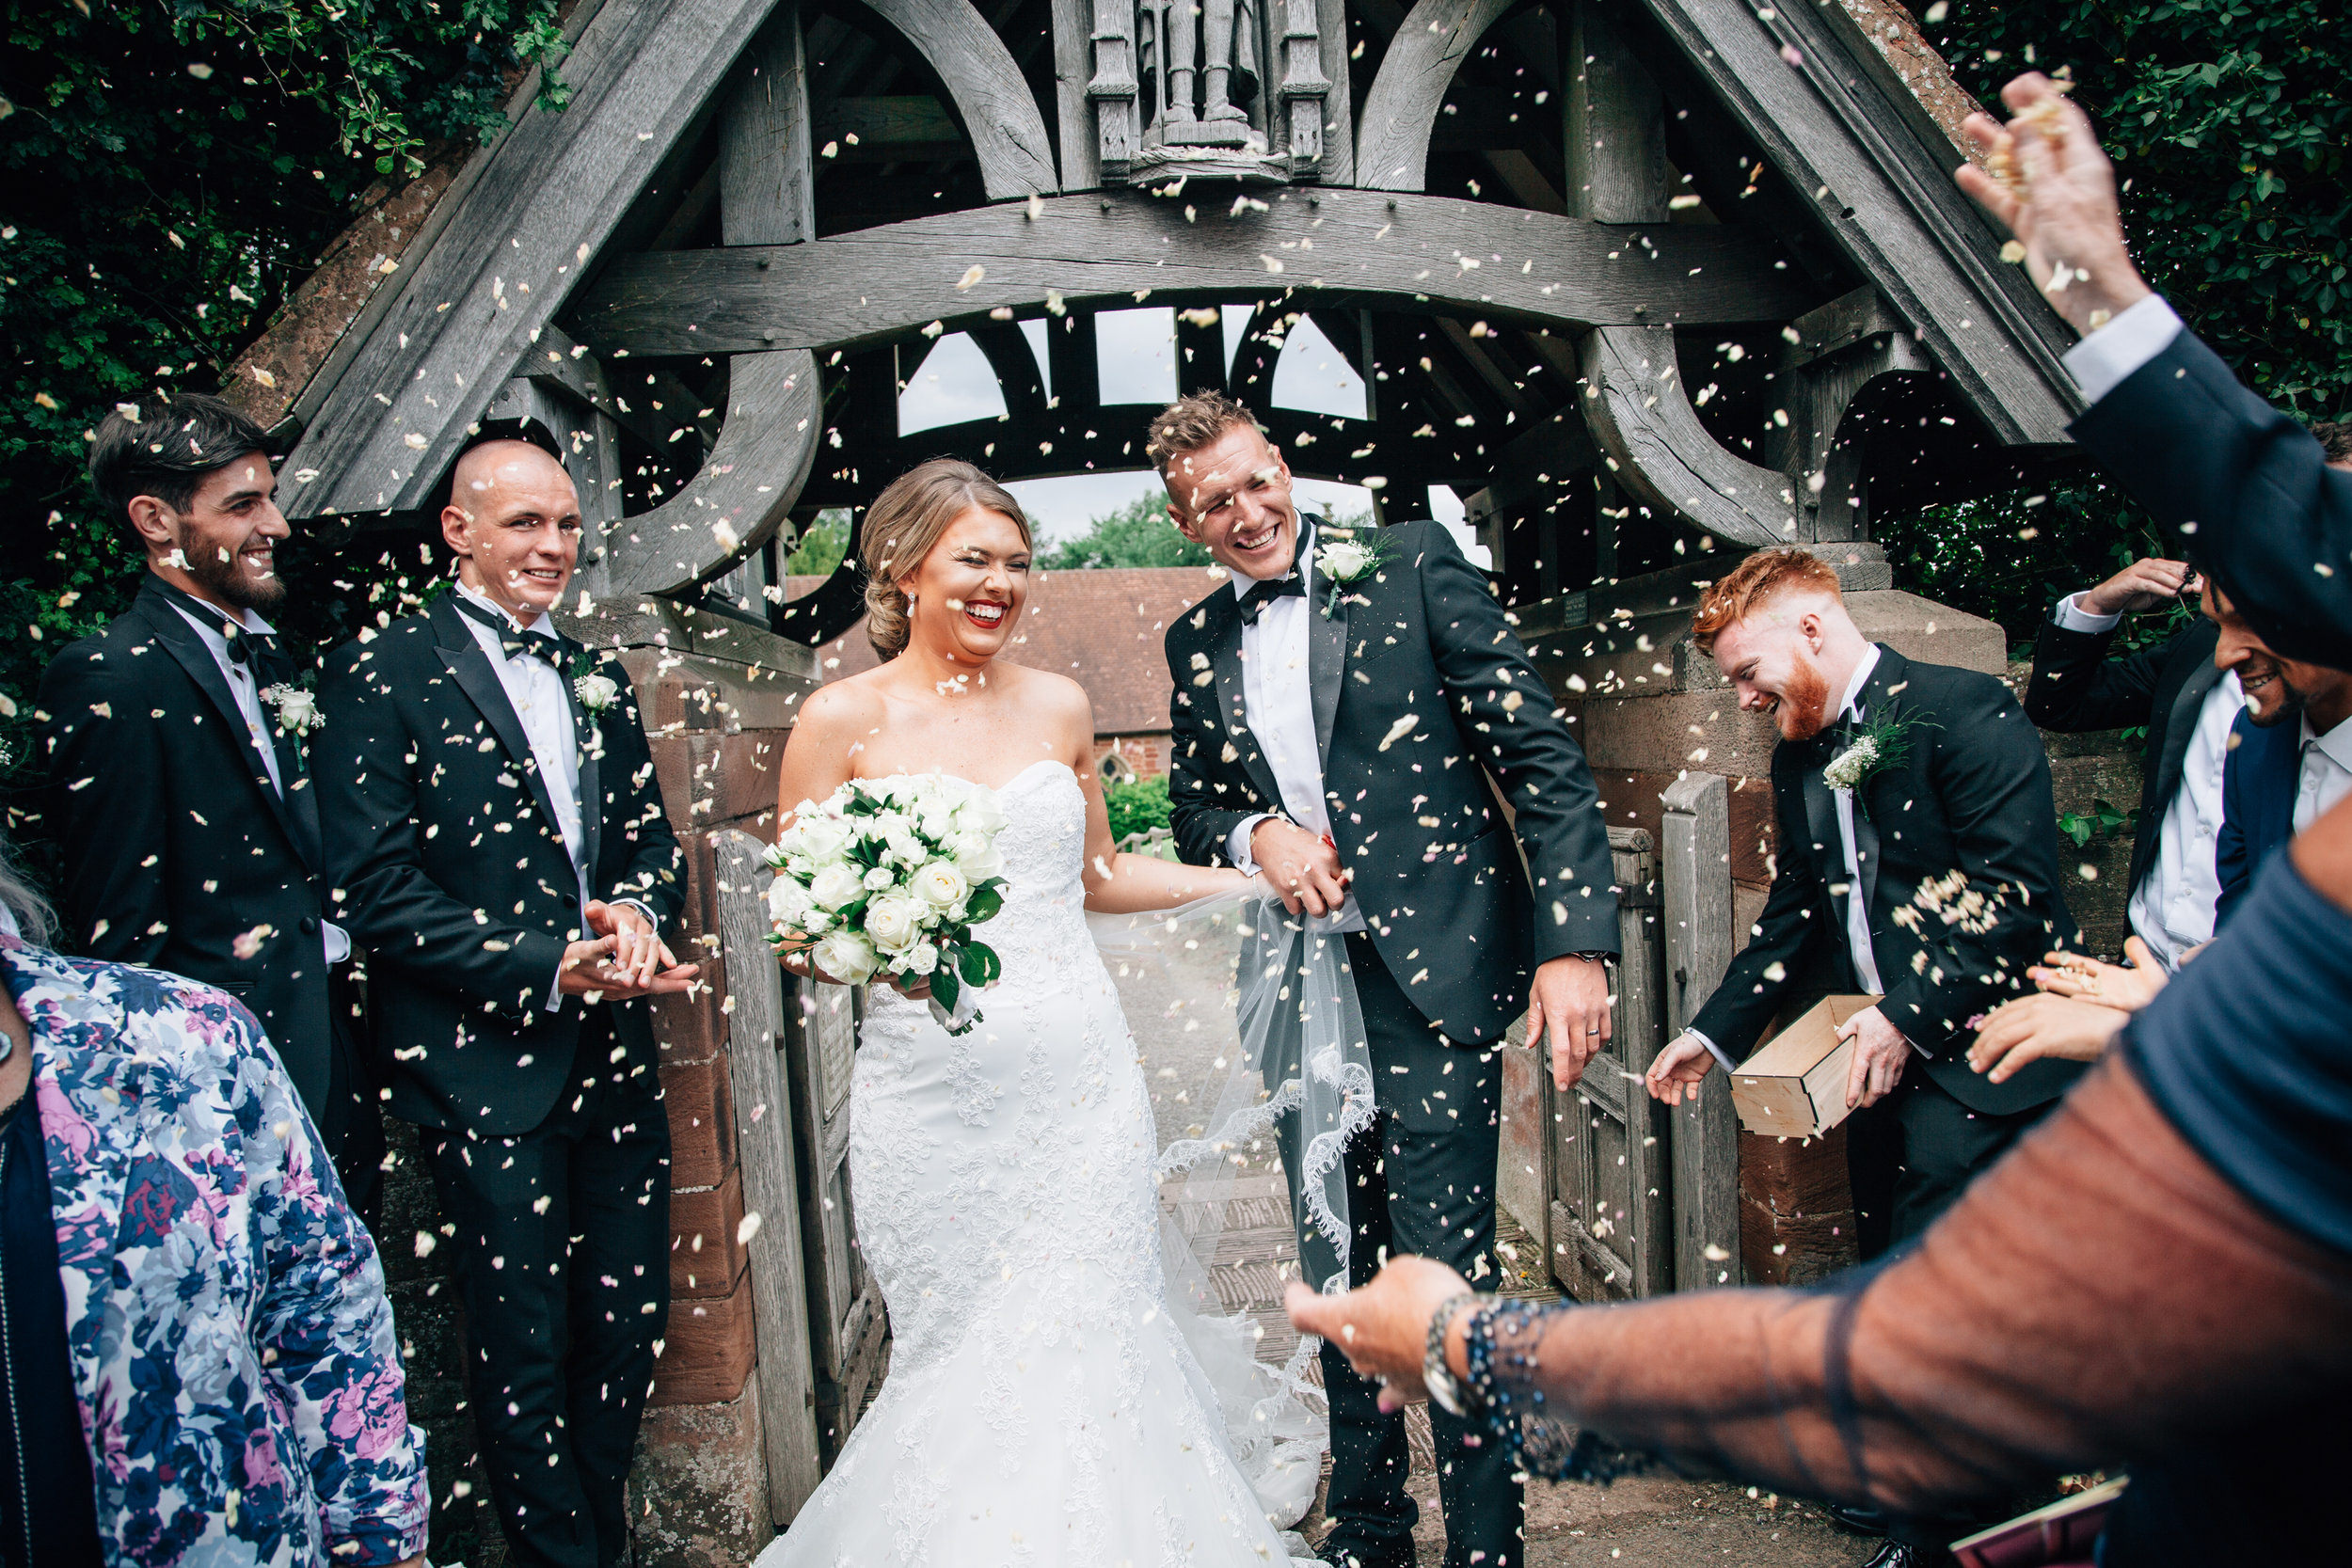 10% off remaining 2019 dates! - Contact me for availability.